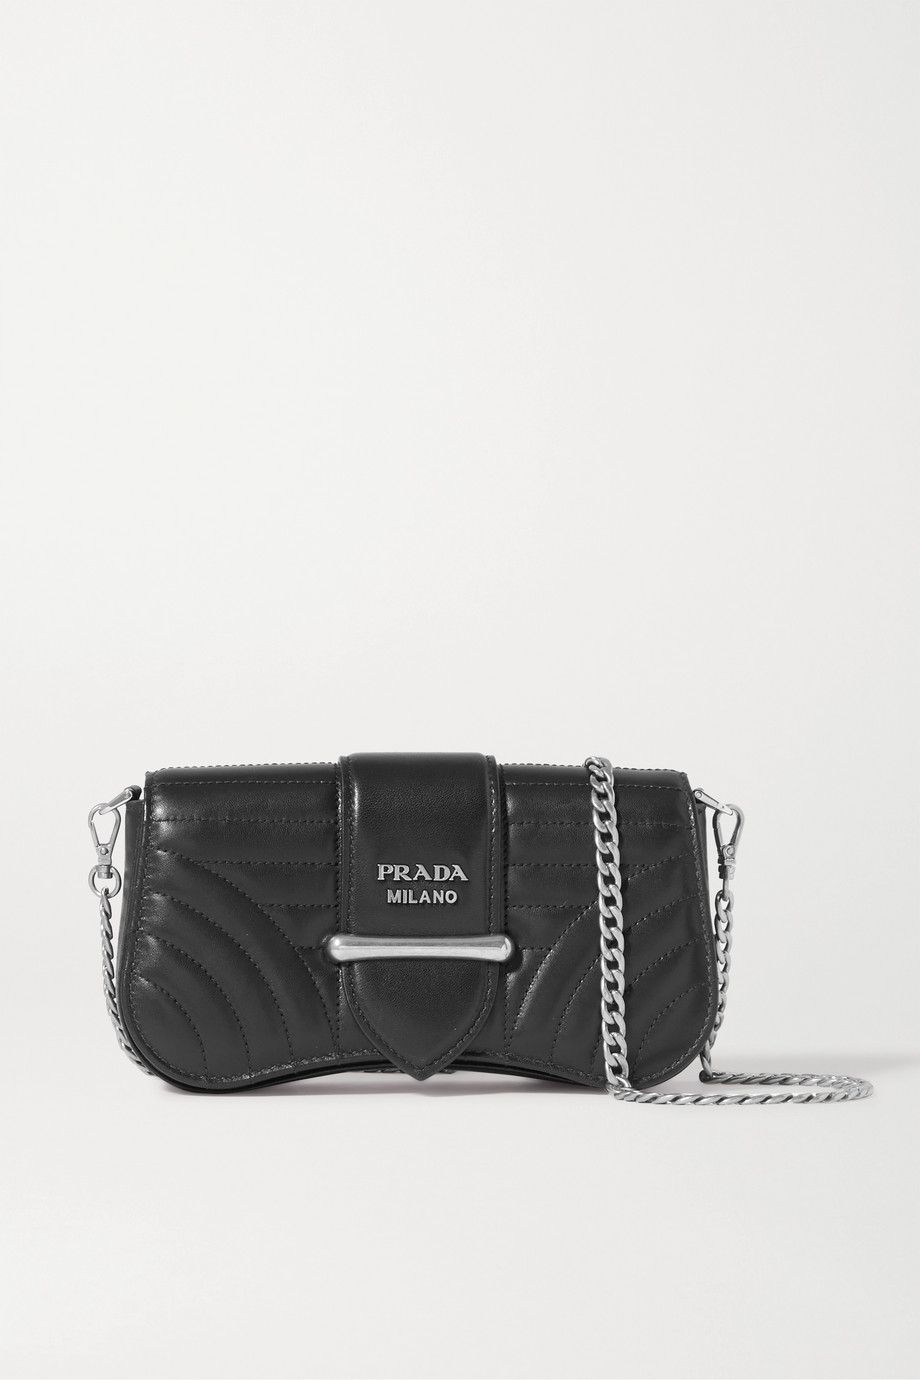 Prada Diagramme quilted leather shoulder bag